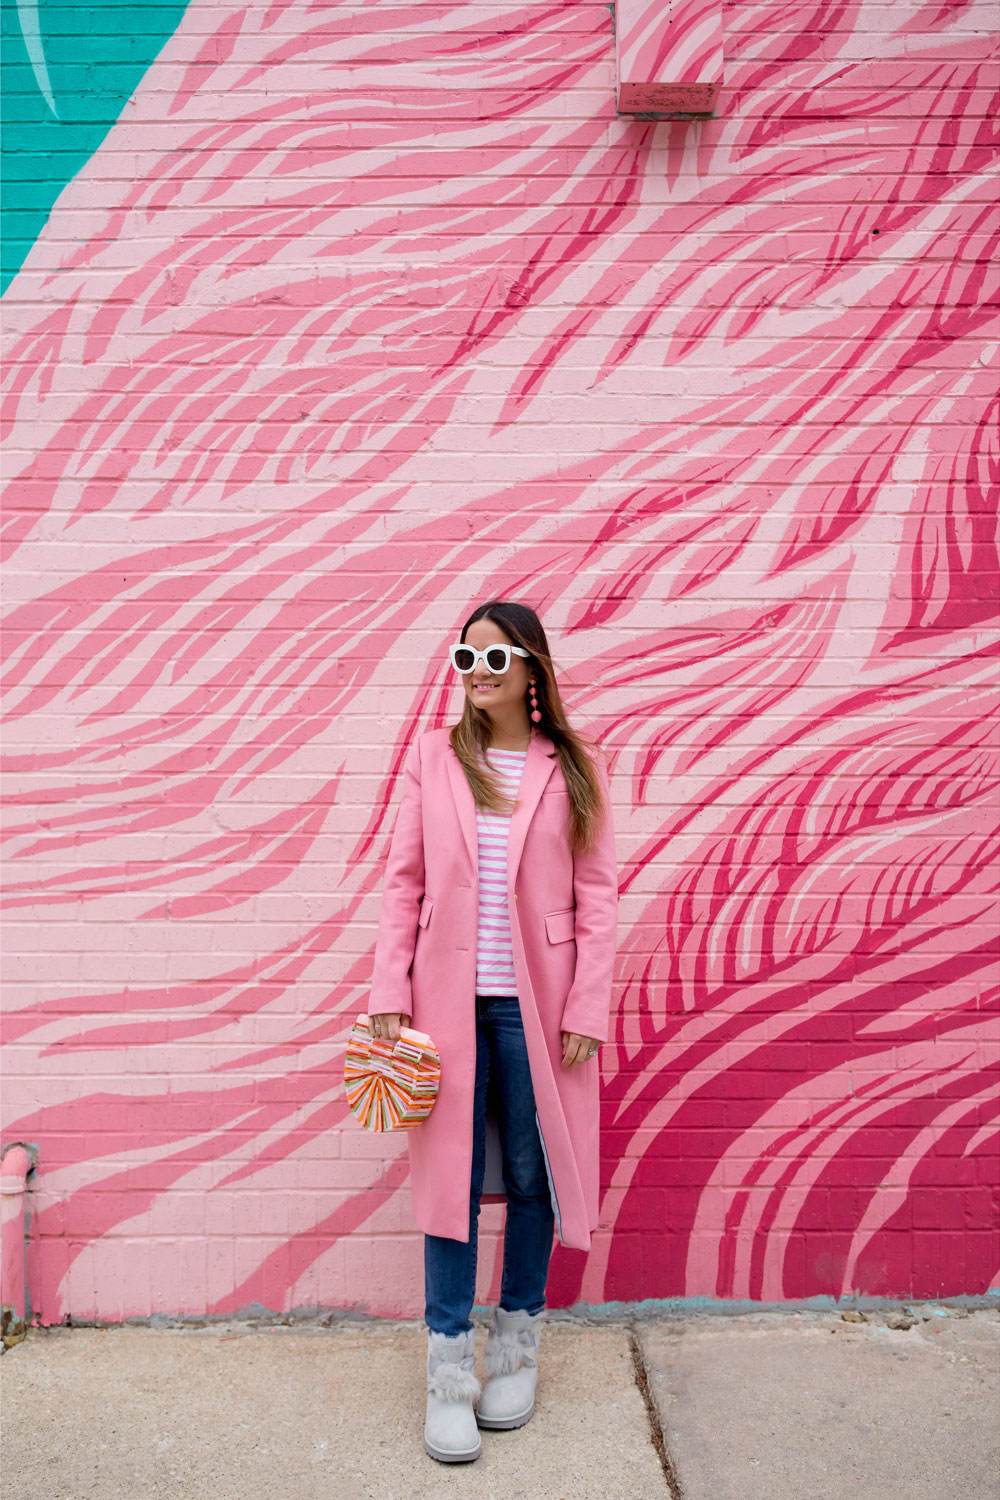 Pink Wall Chicago